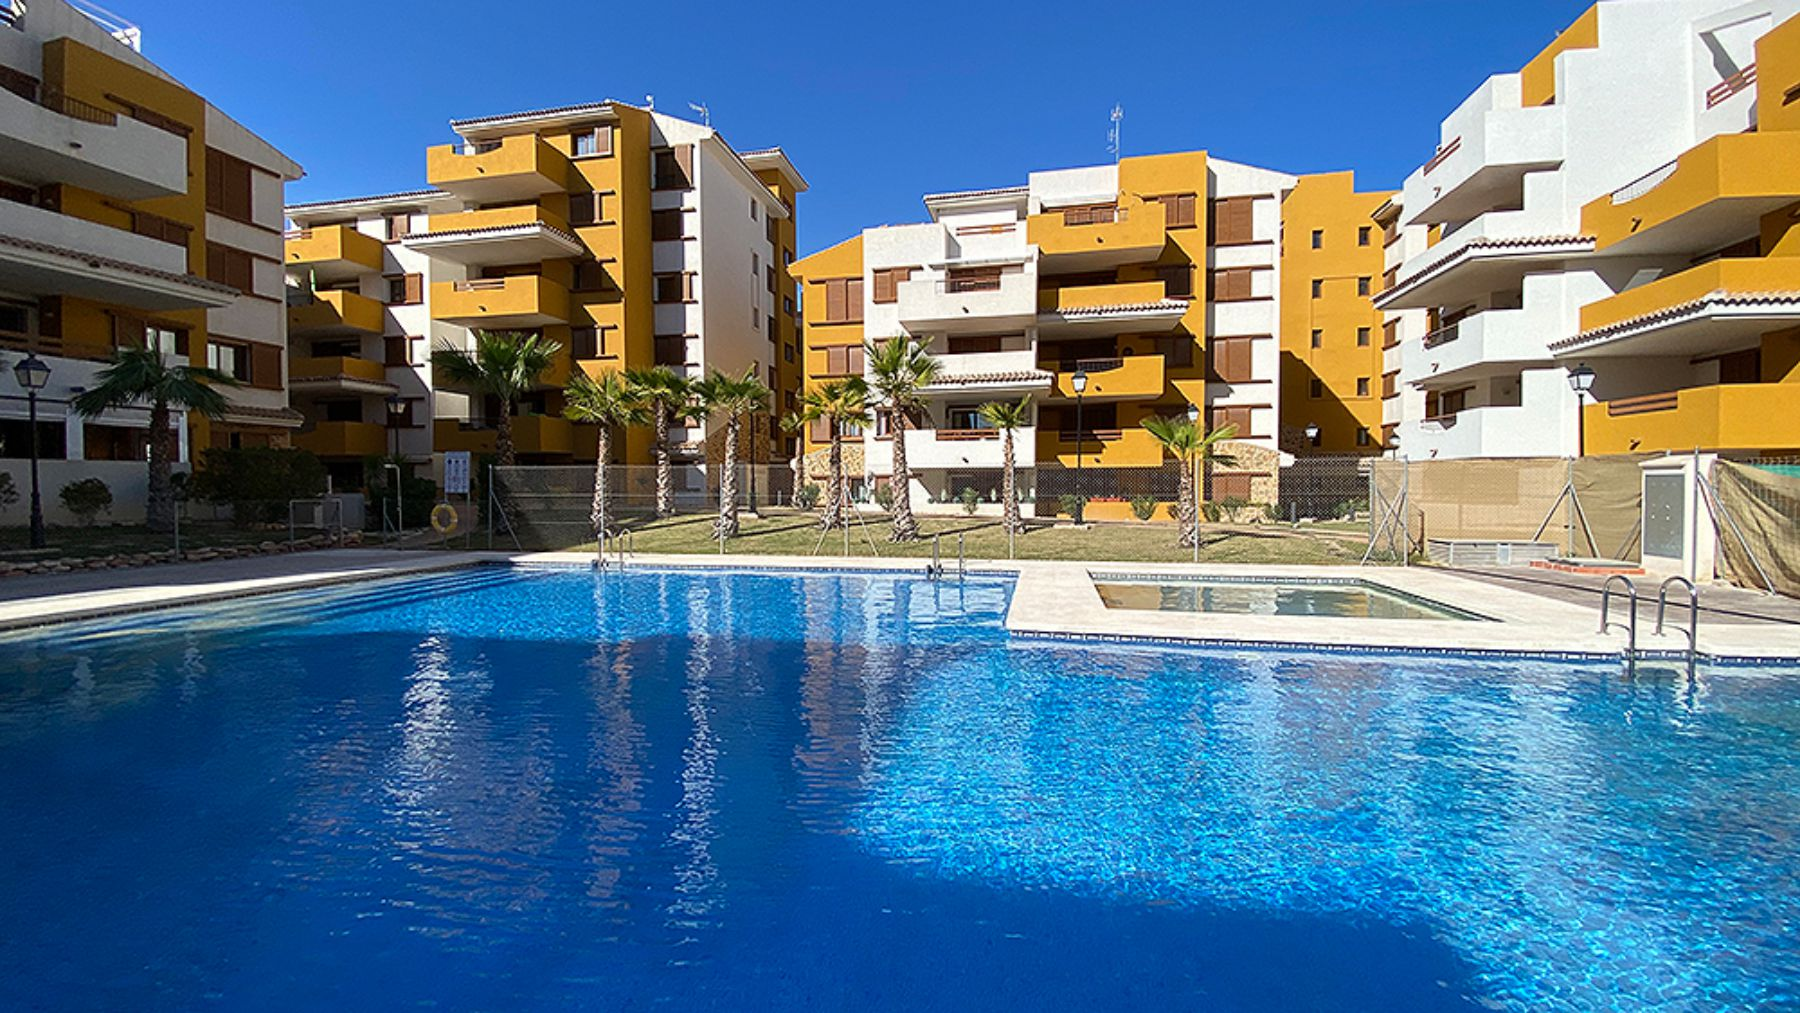 3 Bedrooms Apartment with Large Terrace in La Recoleta – Orihuela Costa